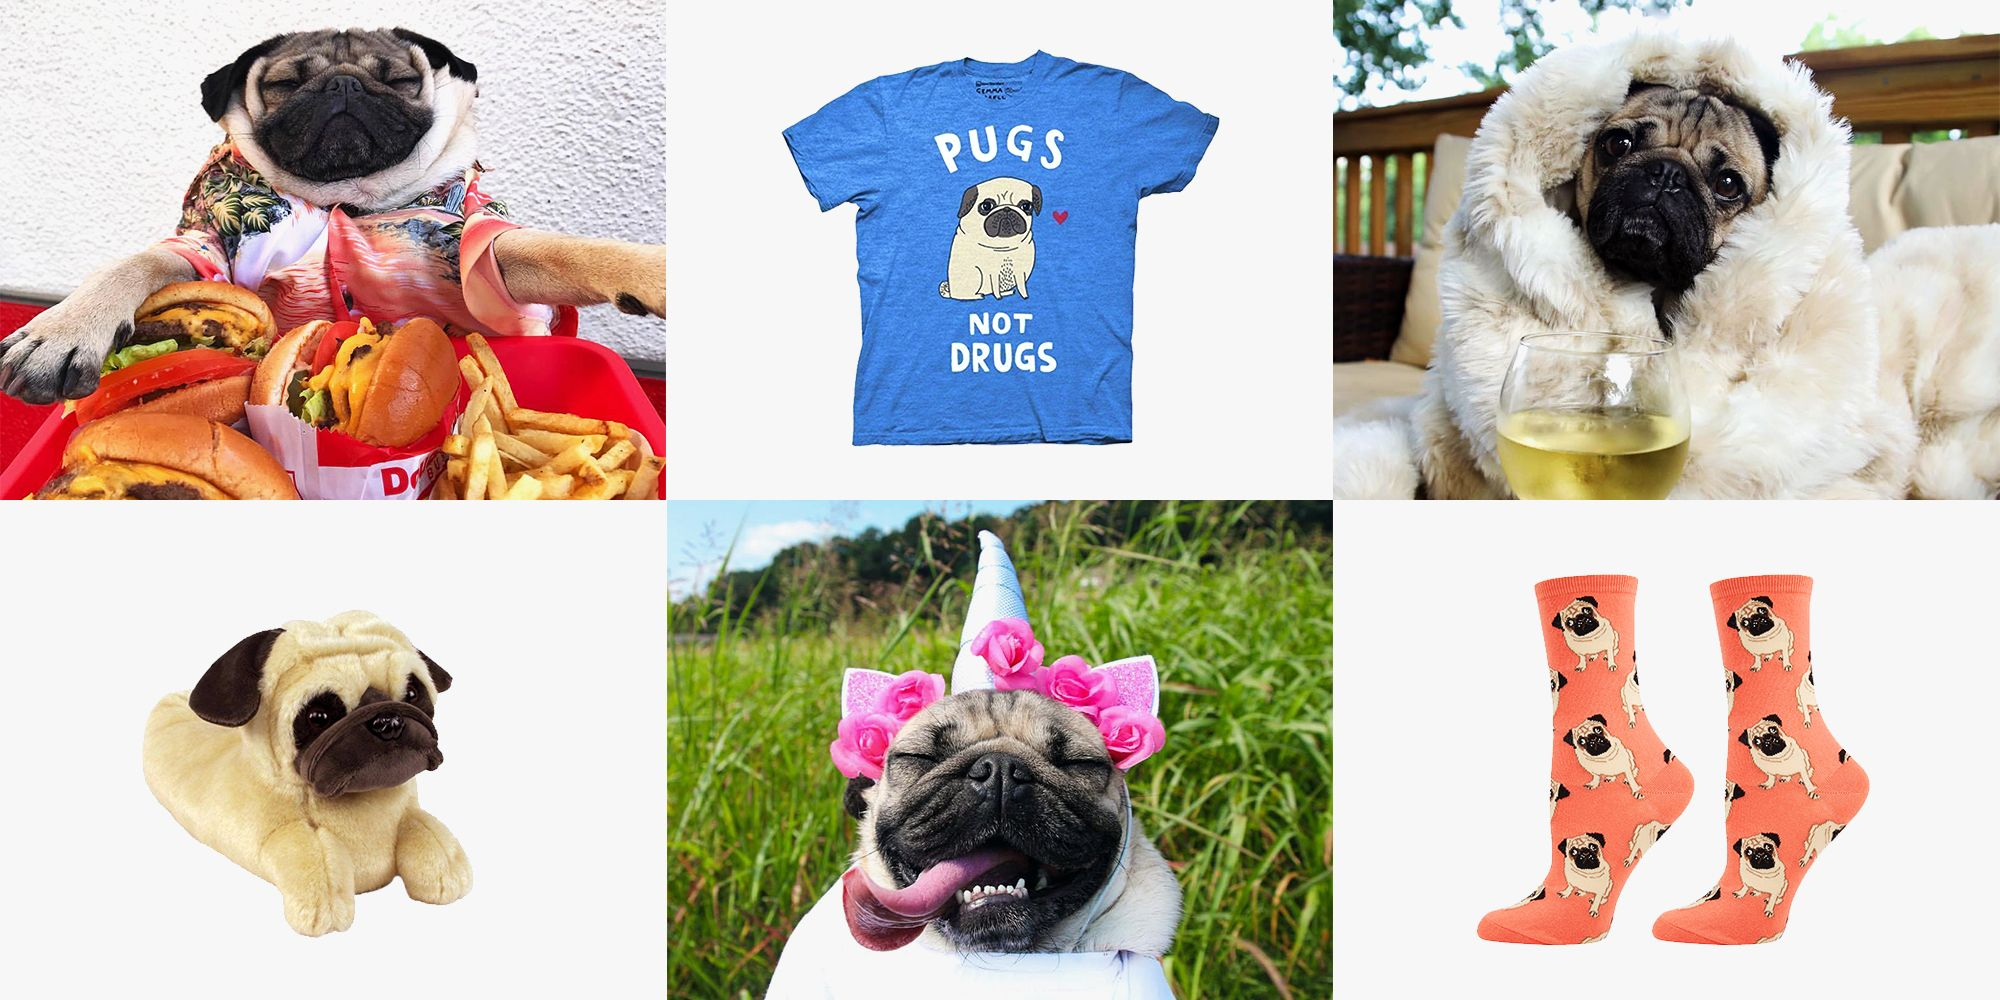 6a35f8d1 14 Best Gifts for Pug Lovers 2018 - Pug-Themed Gift Ideas & Merchandise